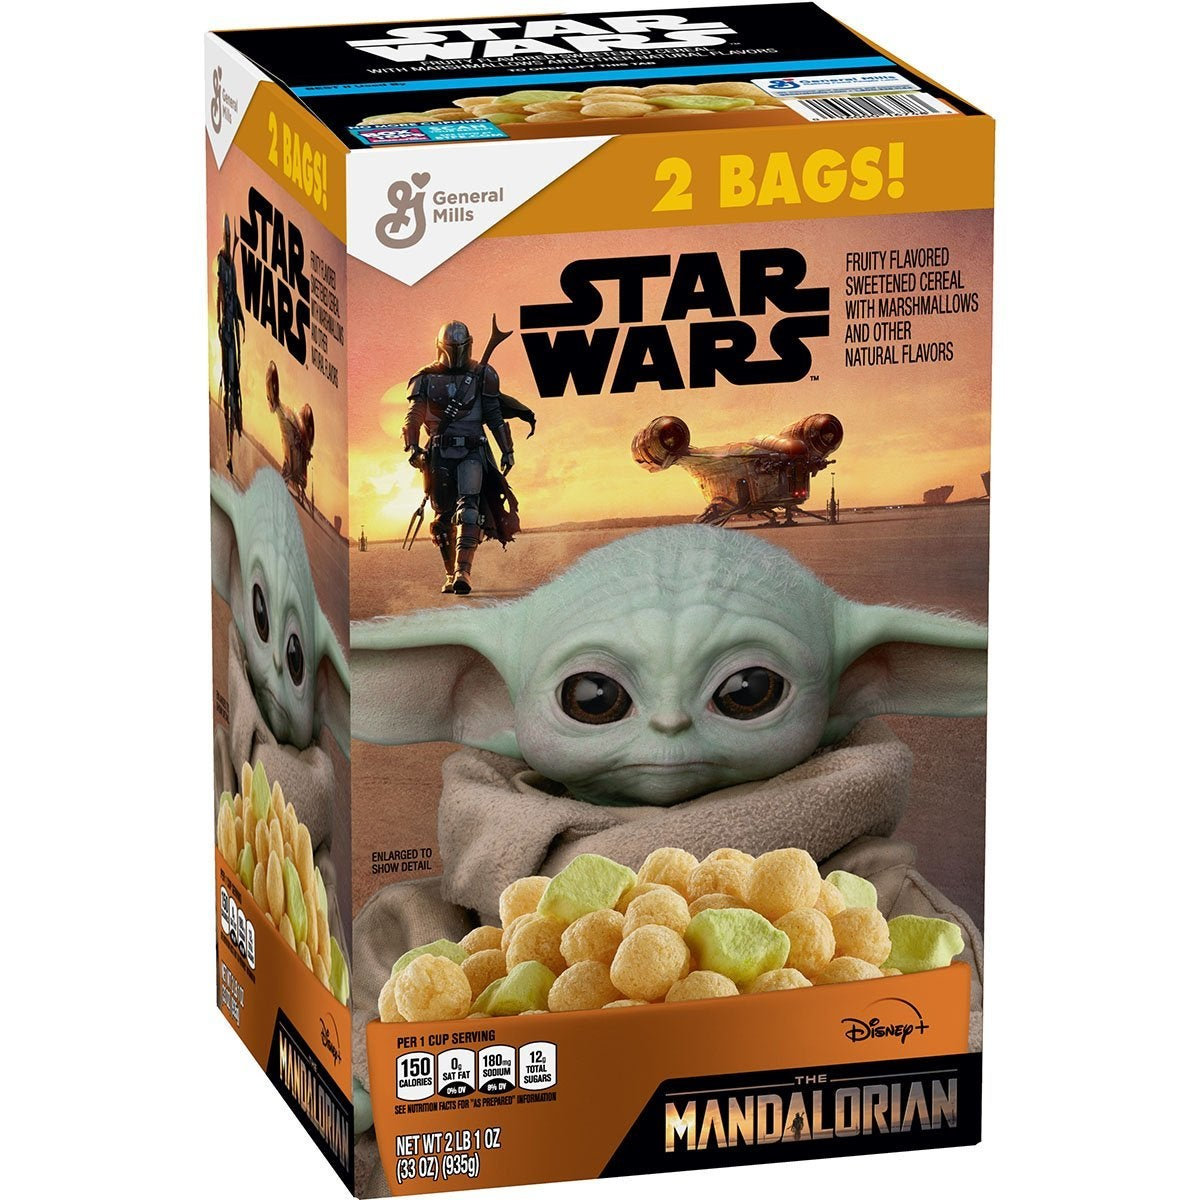 Here's Where to Get Baby Yoda Star Wars: The Mandalorian Cereal First